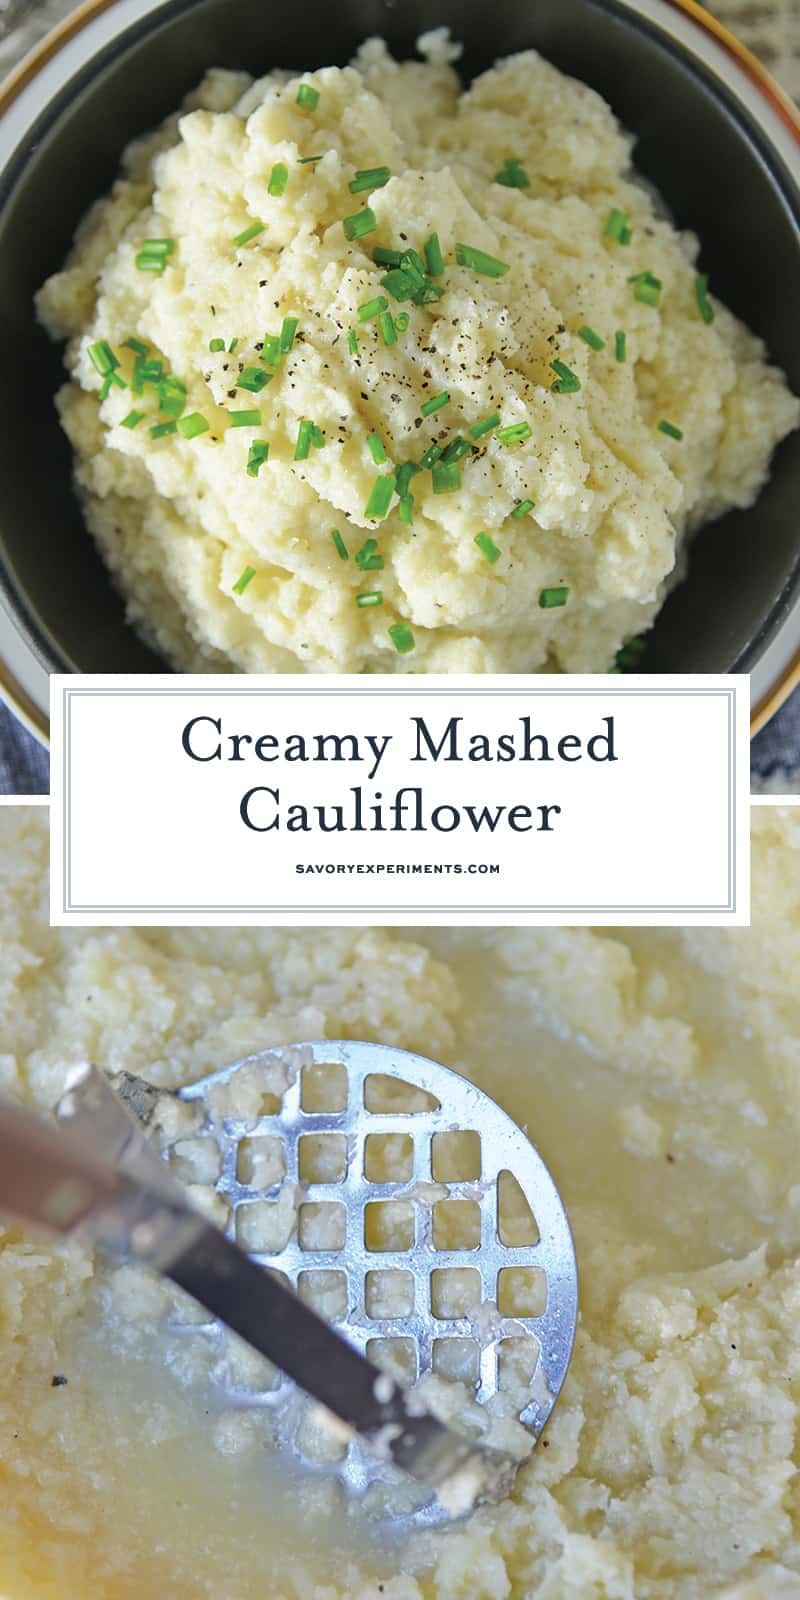 Mashed Cauliflower is a healthier alternative to mashed potatoes, with fewer carbs! This Mashed Cauliflower recipe is perfectly smooth and creamy! #mashedcauliflower #cauliflowermashedpotatoes www.savoryexperiments.com